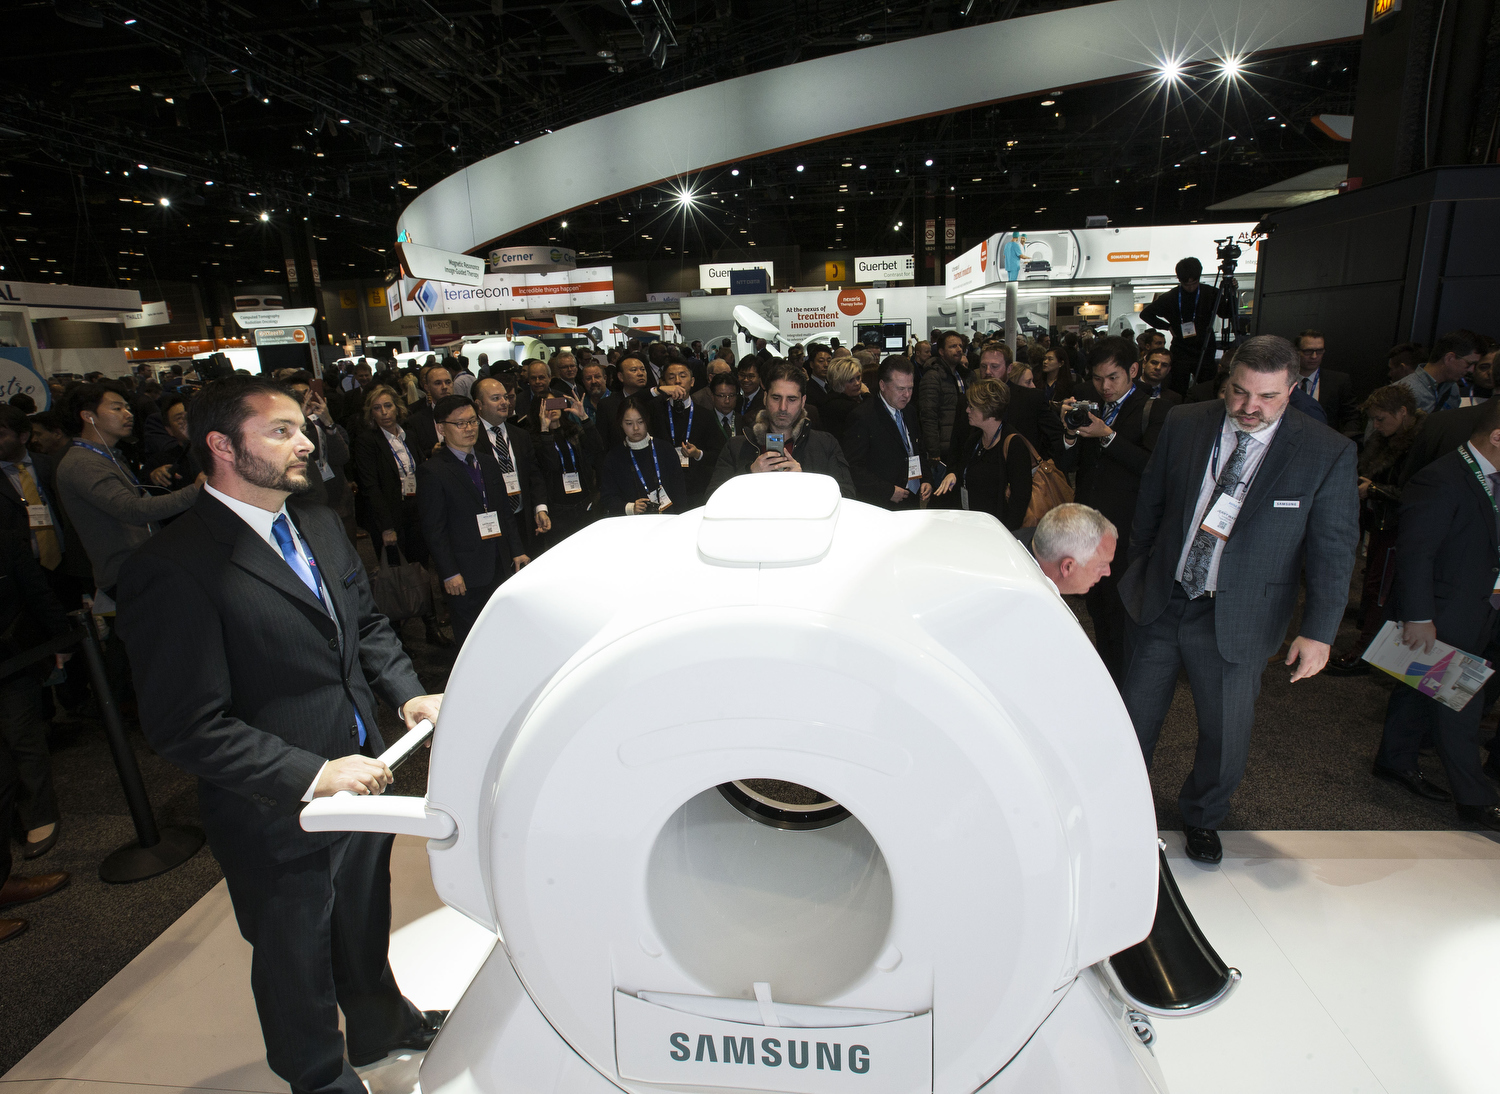 at the RSNA at McCormick Place on Sunday, November 26, 2017 in Chicago. Photo by John Konstantaras for Samsung Medison<br /> http://JohnKonPhoto.com